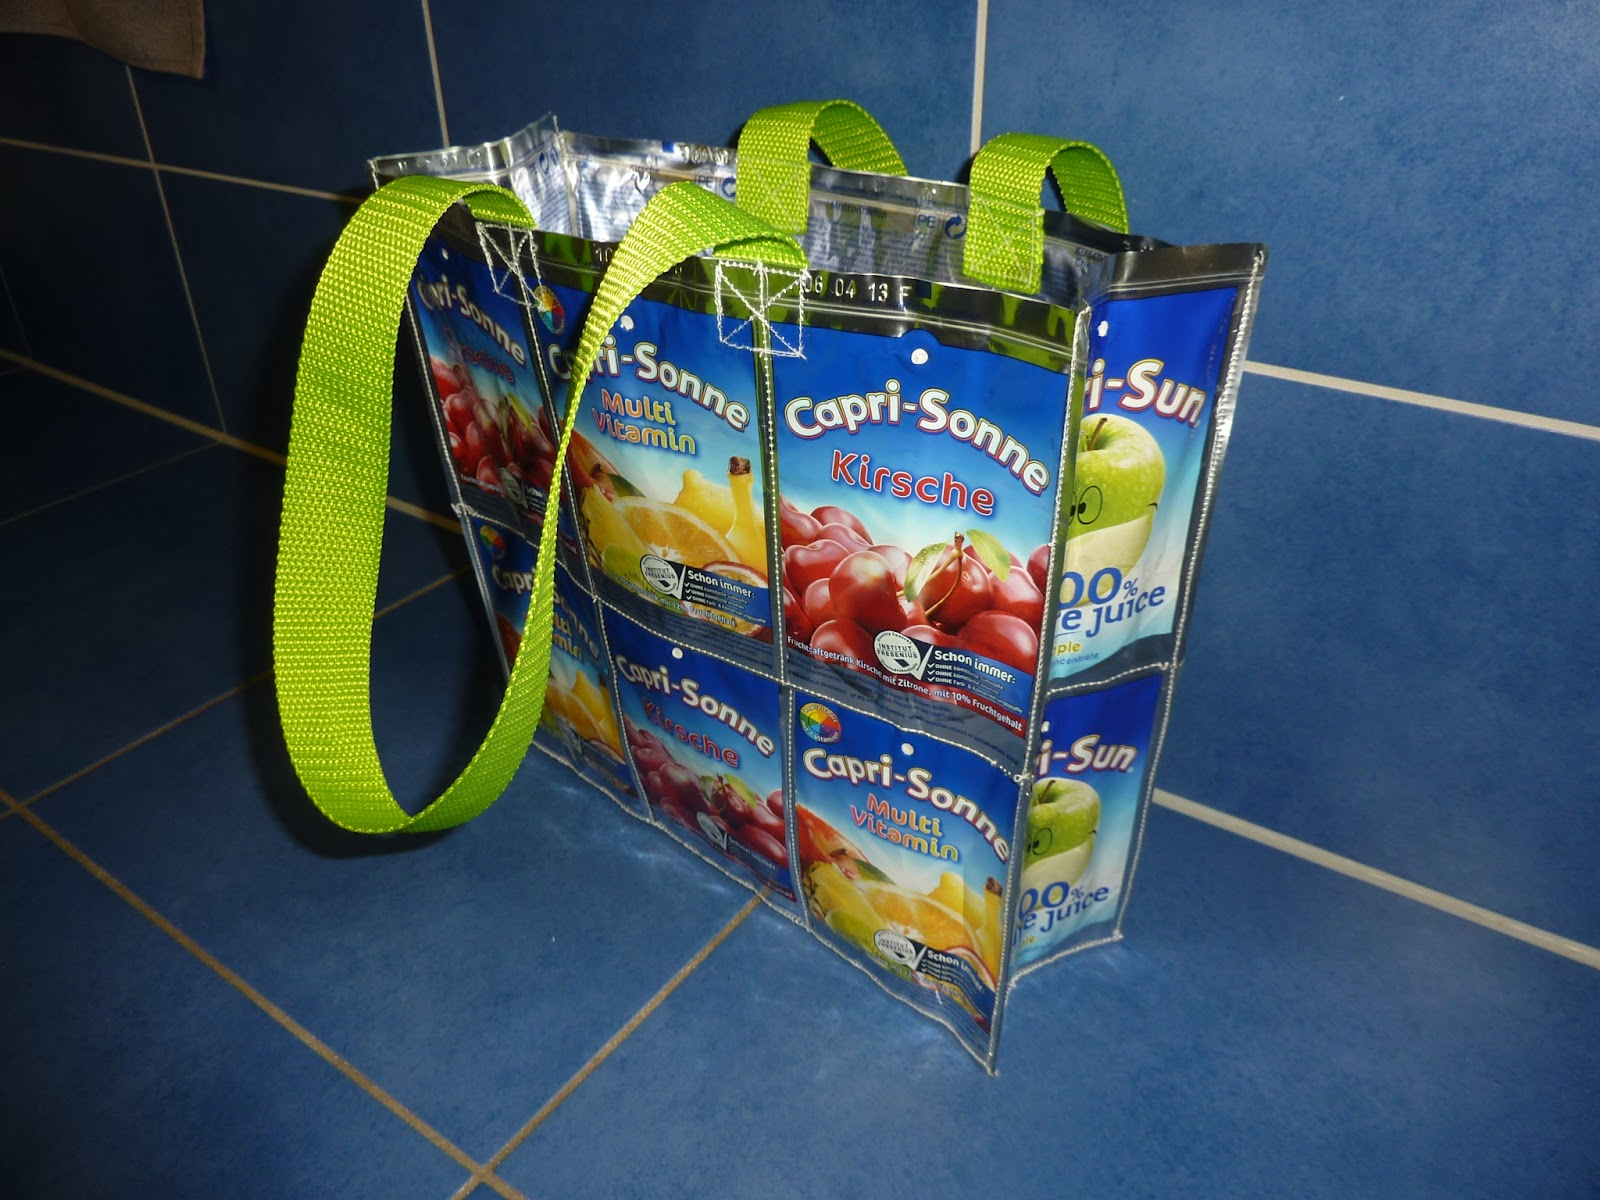 Upcycling Taschen Selber Machen Made By Vicky: Grosse Capri Sonne Tasche, Recycling